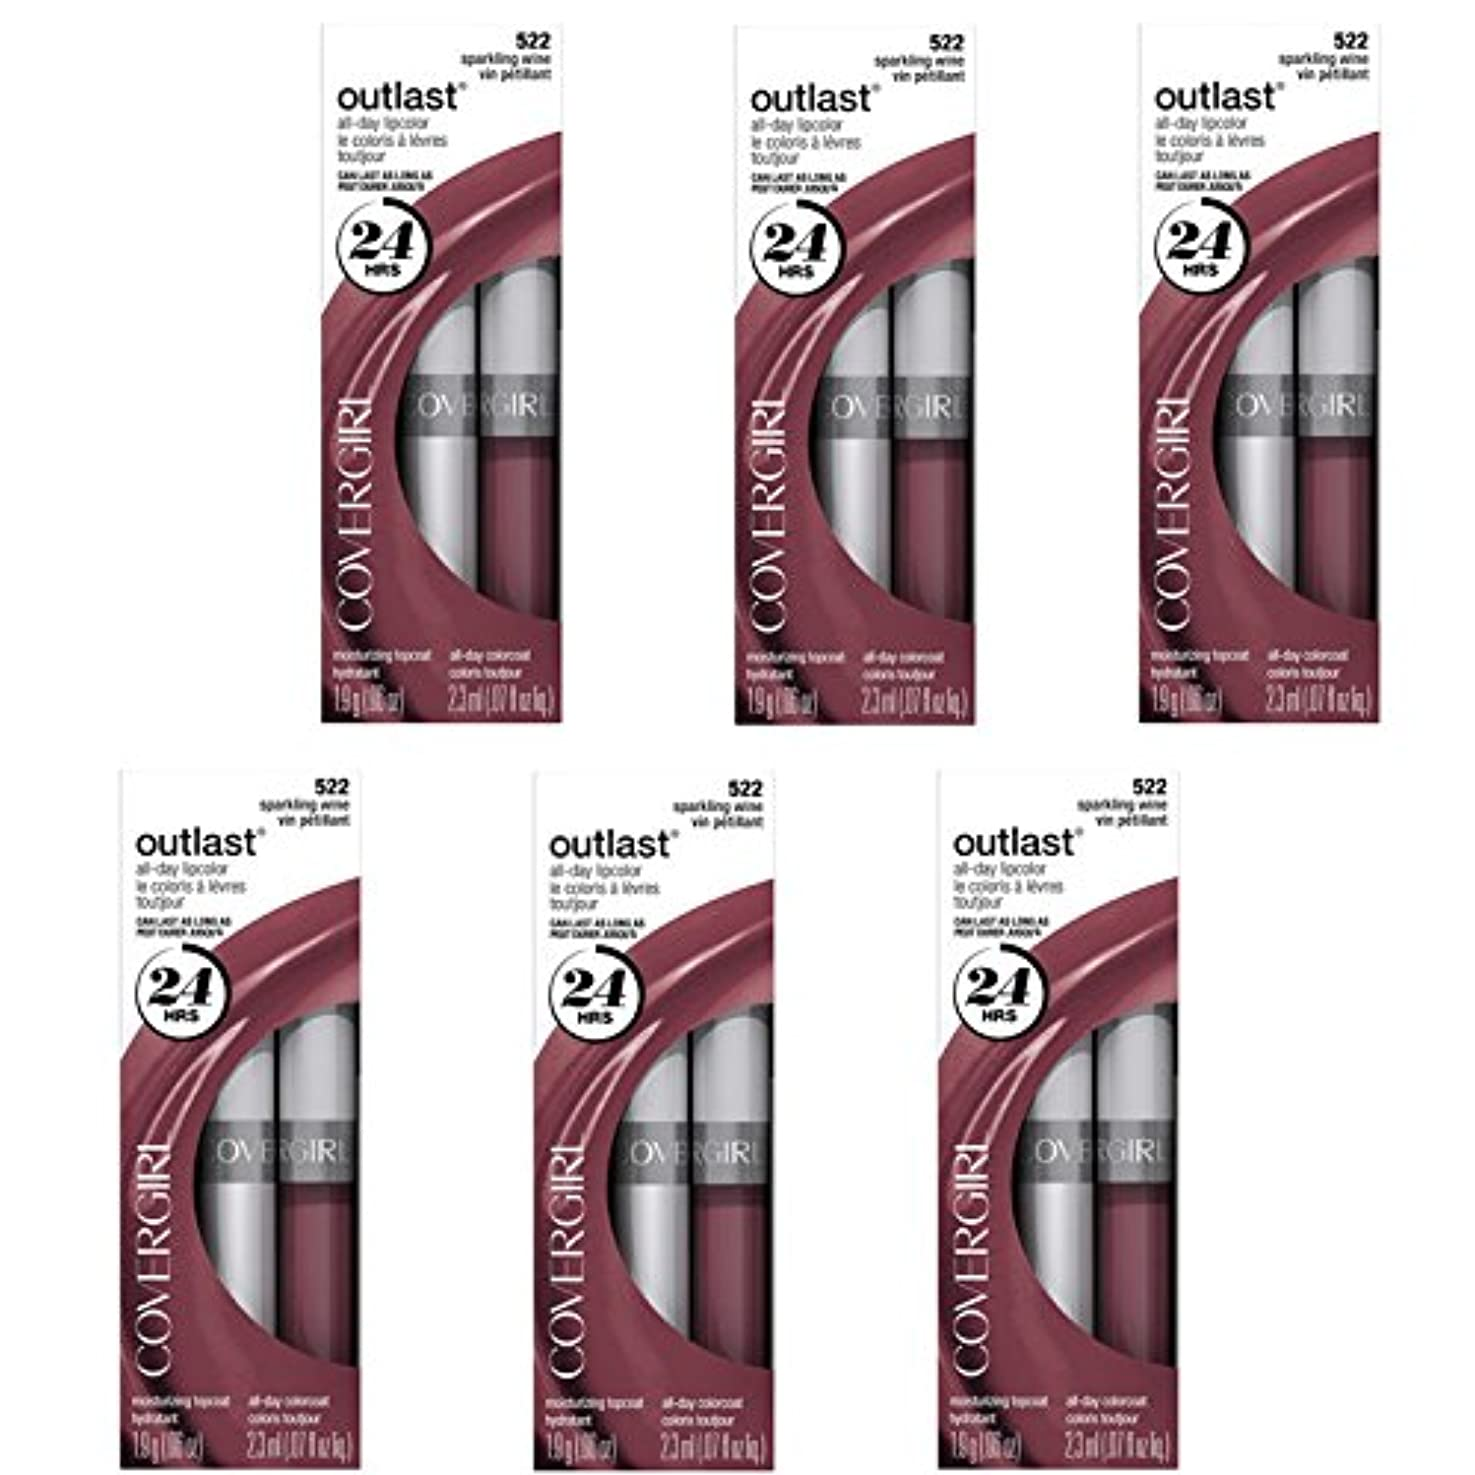 ビーチリレー食事を調理するCOVERGIRL Outlast All-Day Moisturizing Lip Color 522 Sparkling Wine, 6/set, Discontinued [並行輸入品]